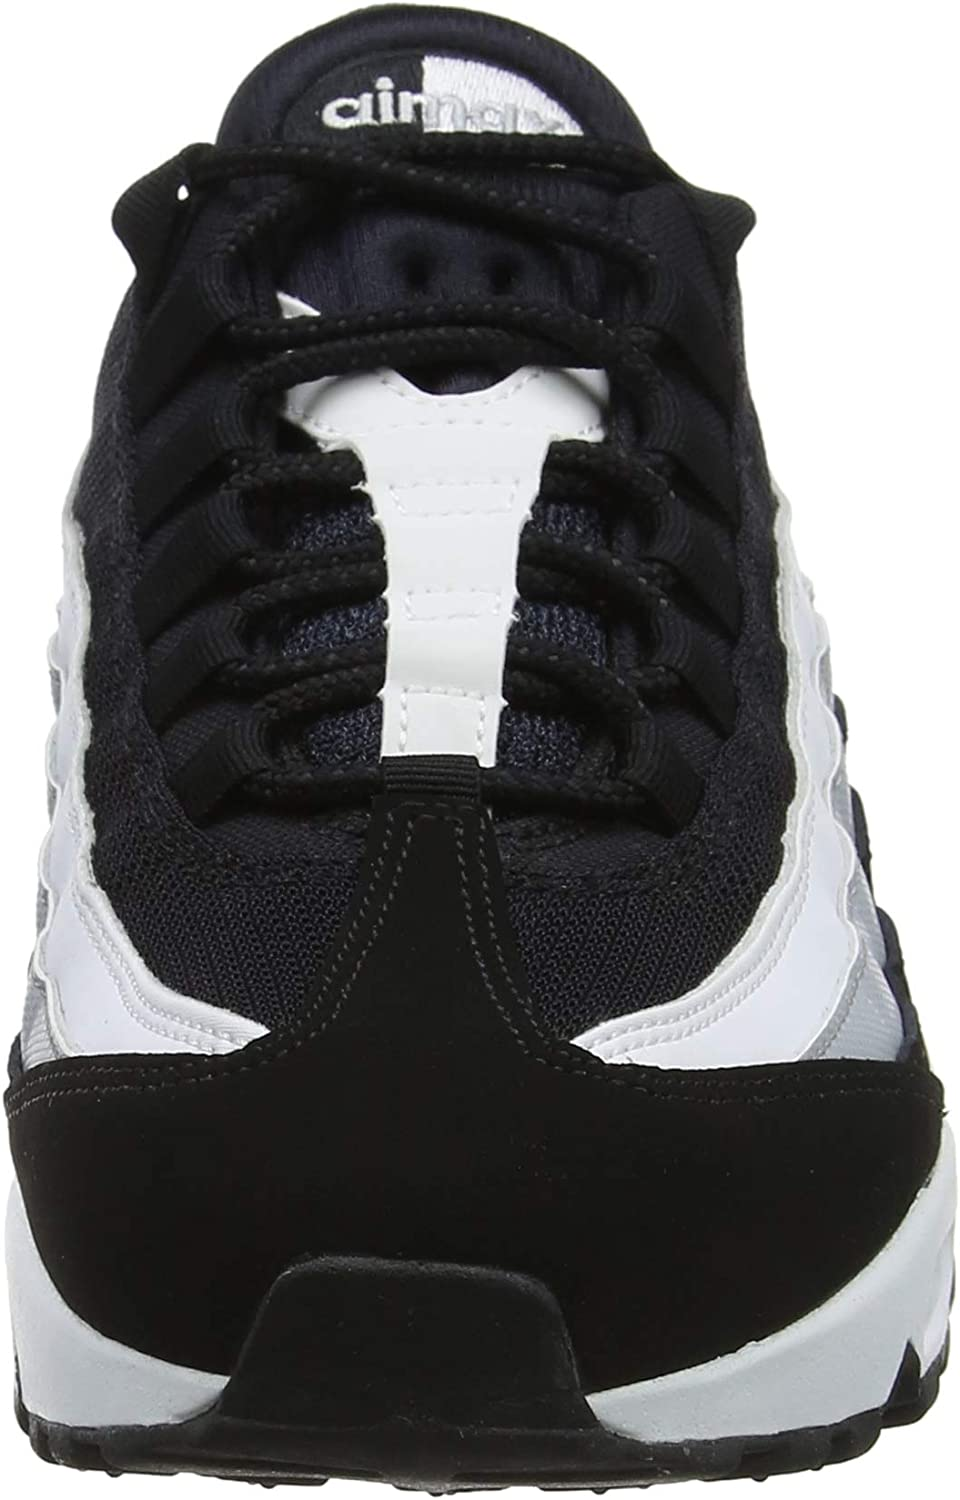 NIKE Air MAX 95 Essential, Zapatillas de Running para Hombre: Amazon.es: Zapatos y complementos